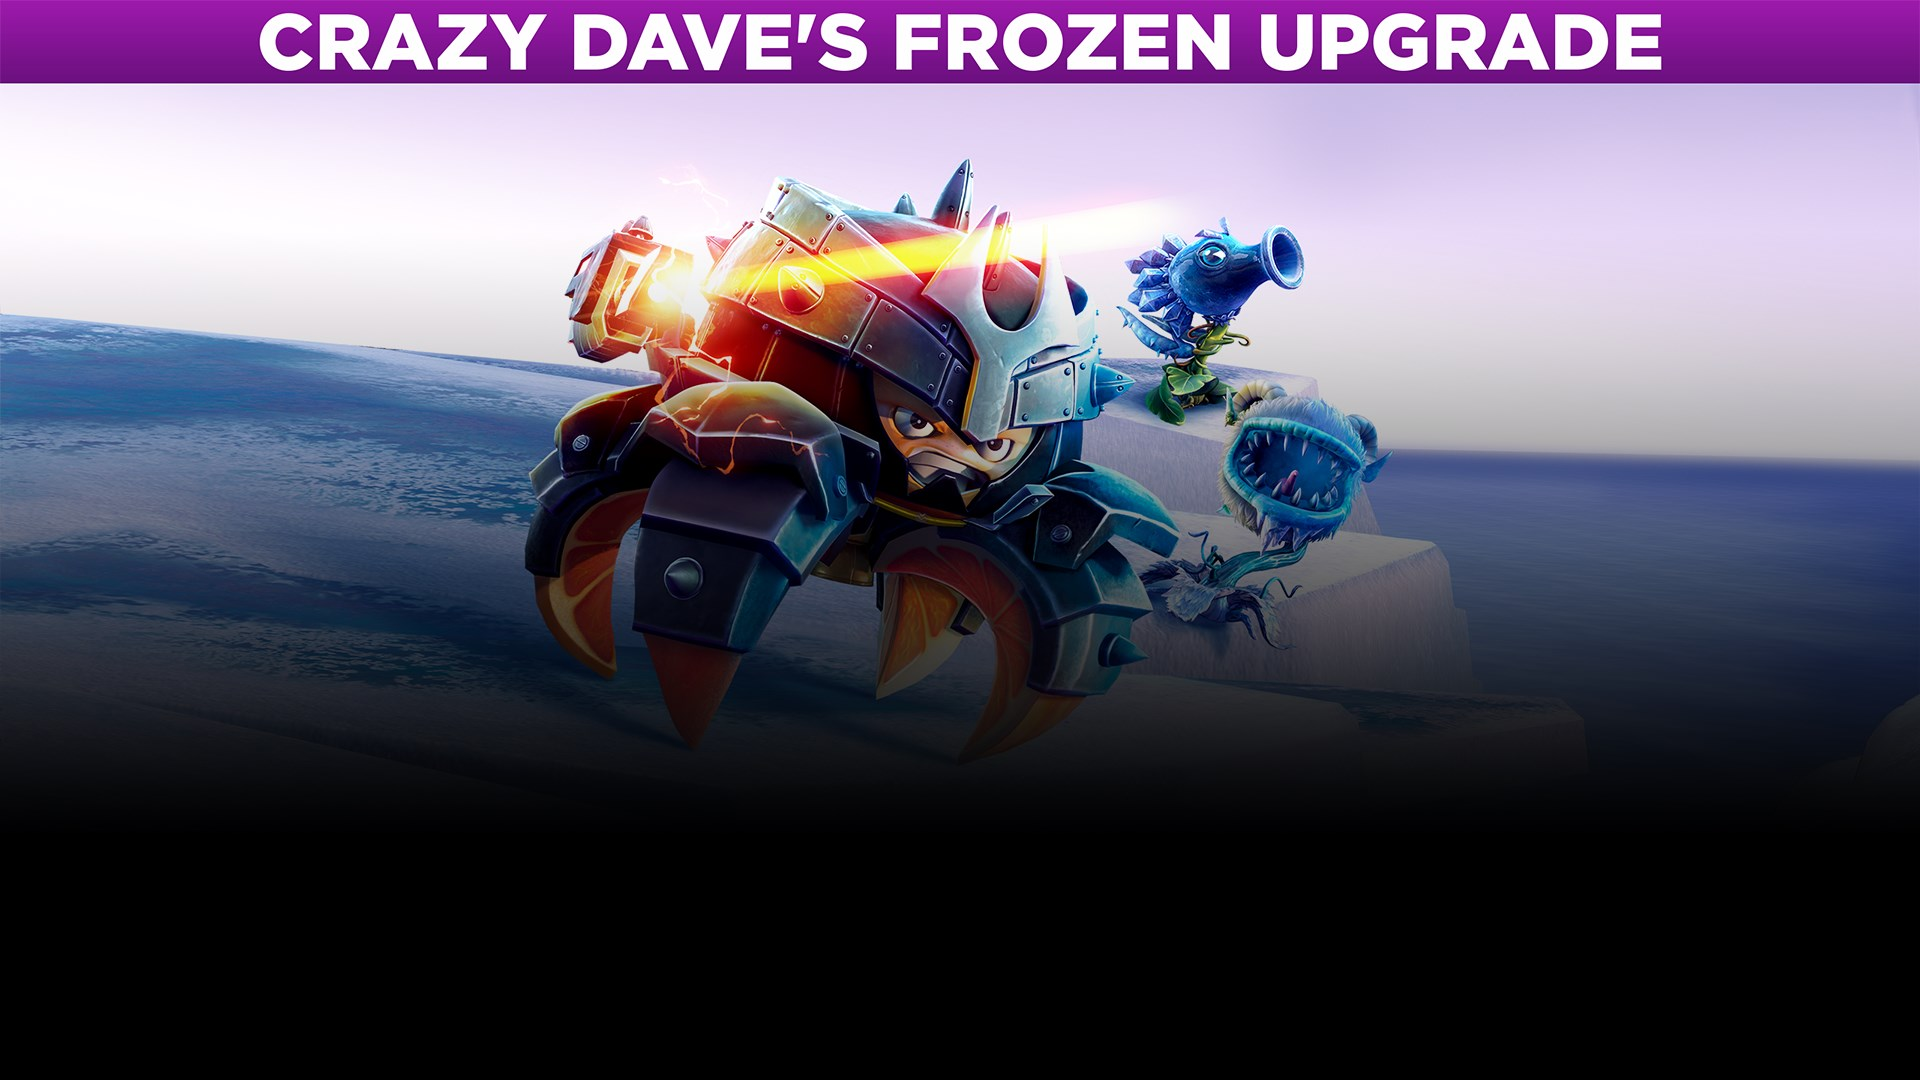 Buy Plants vs  Zombies™ Garden Warfare 2 - Crazy Dave's Frozen Upgrade -  Microsoft Store en-CA